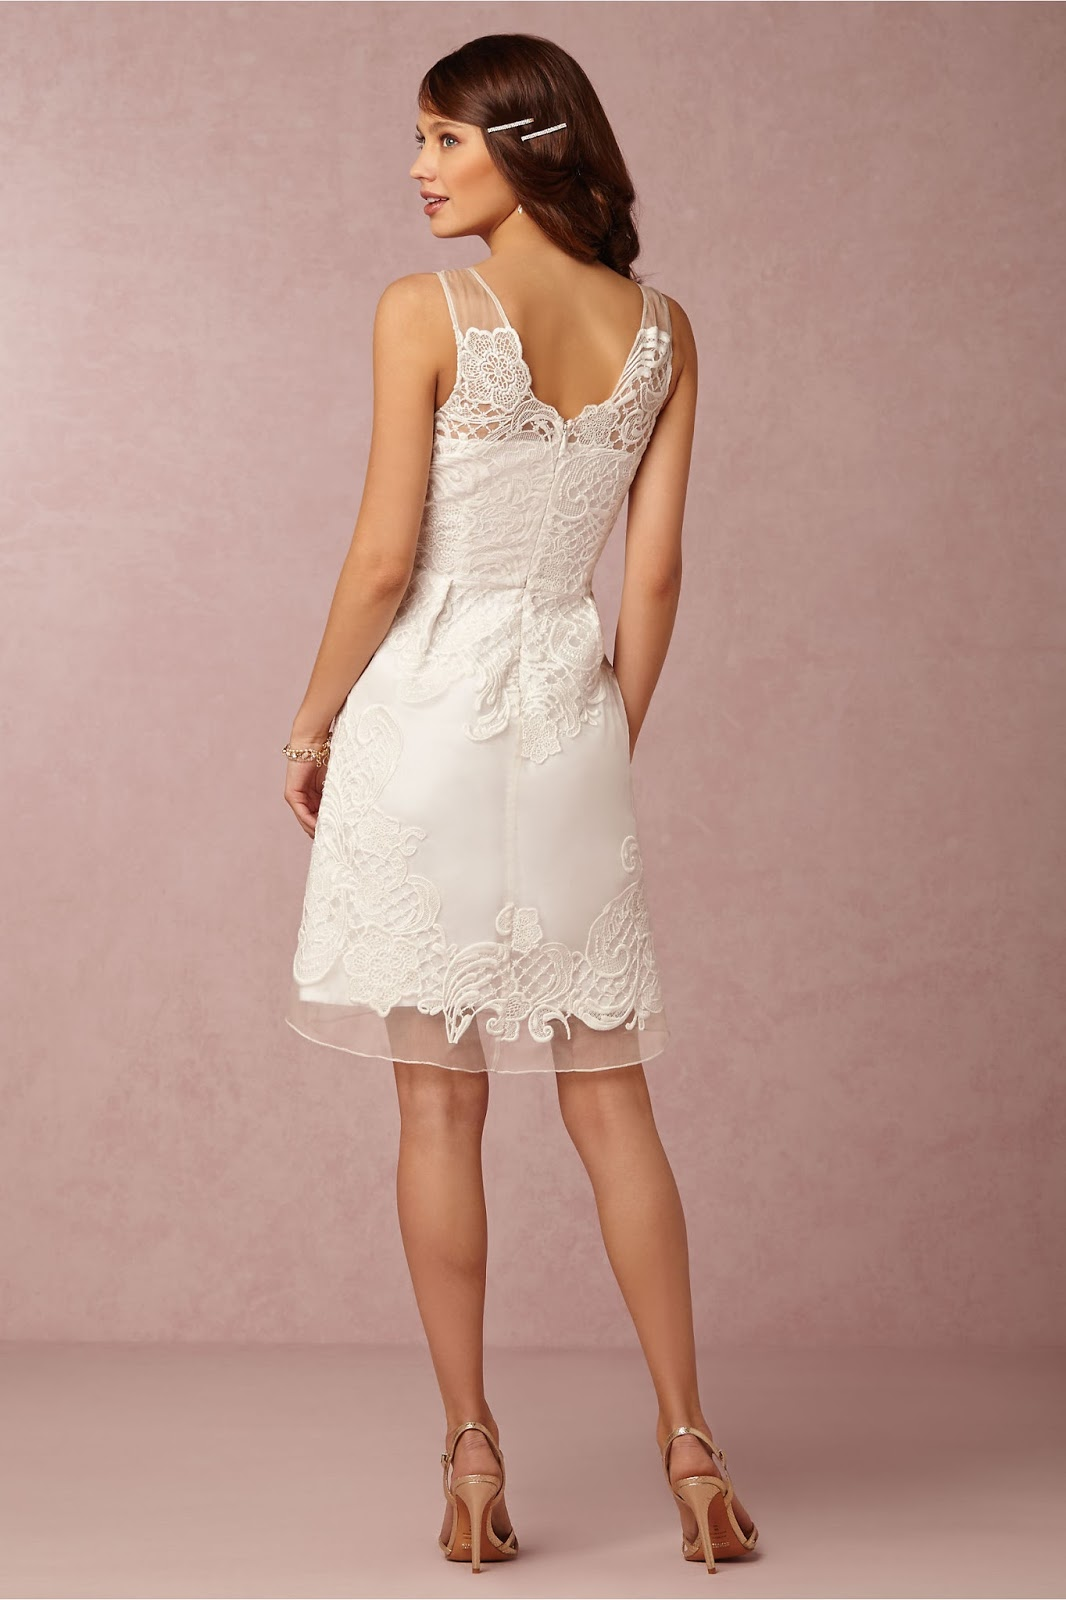 Short Wedding Dresses For Second Marriages